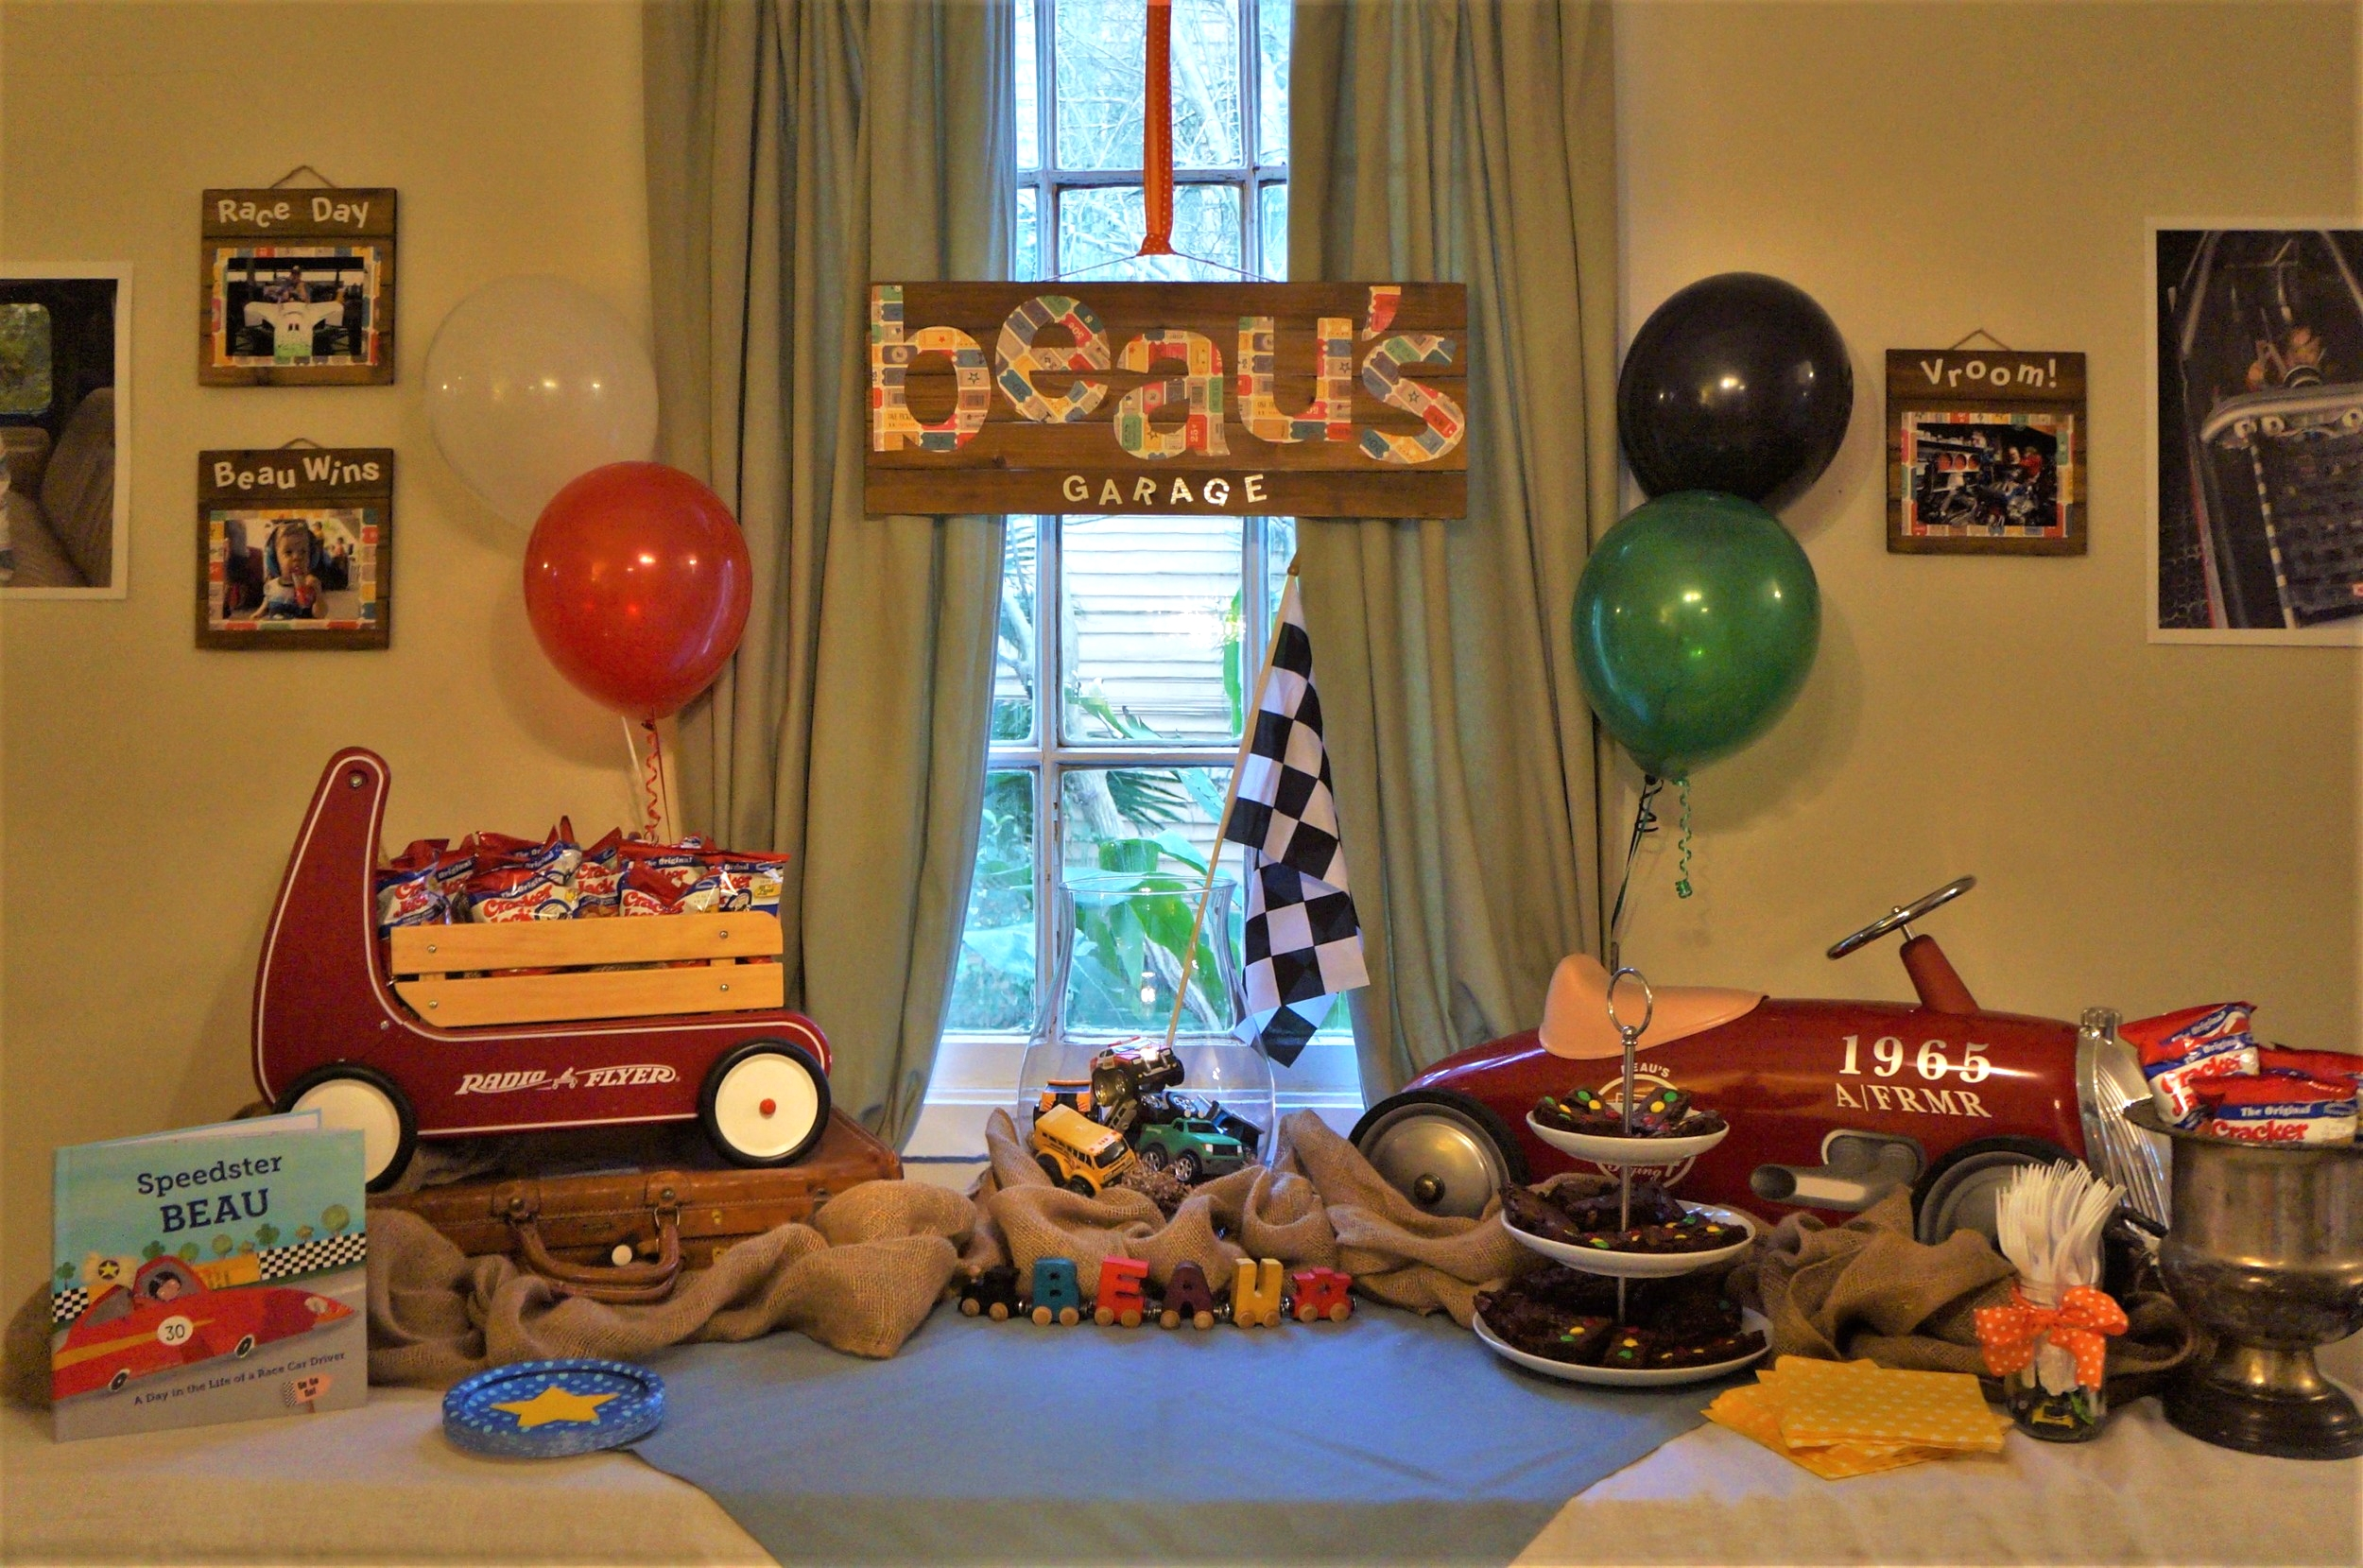 Vintage race car themed birthday party